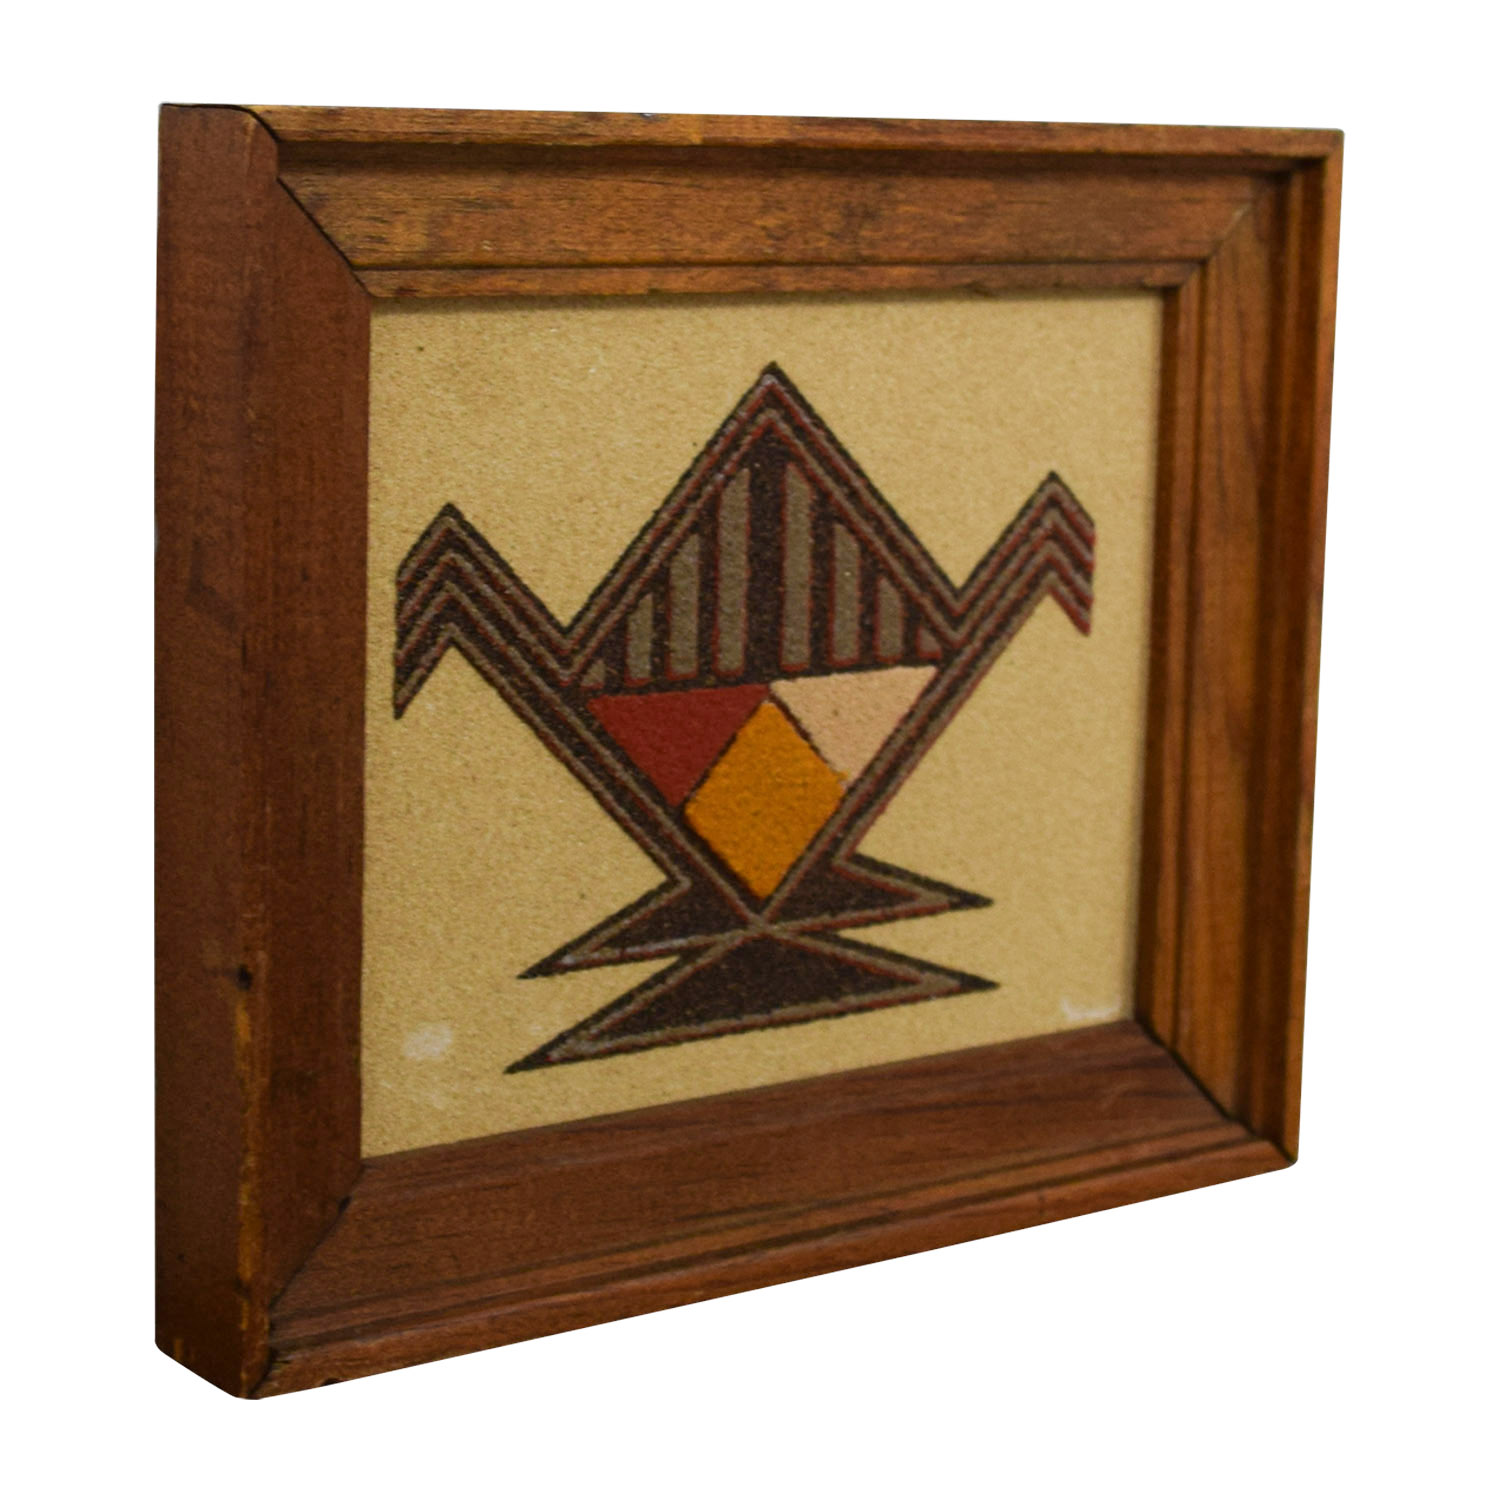 Regis of New Mexico Regis of New Mexico Rain Symbol for sale